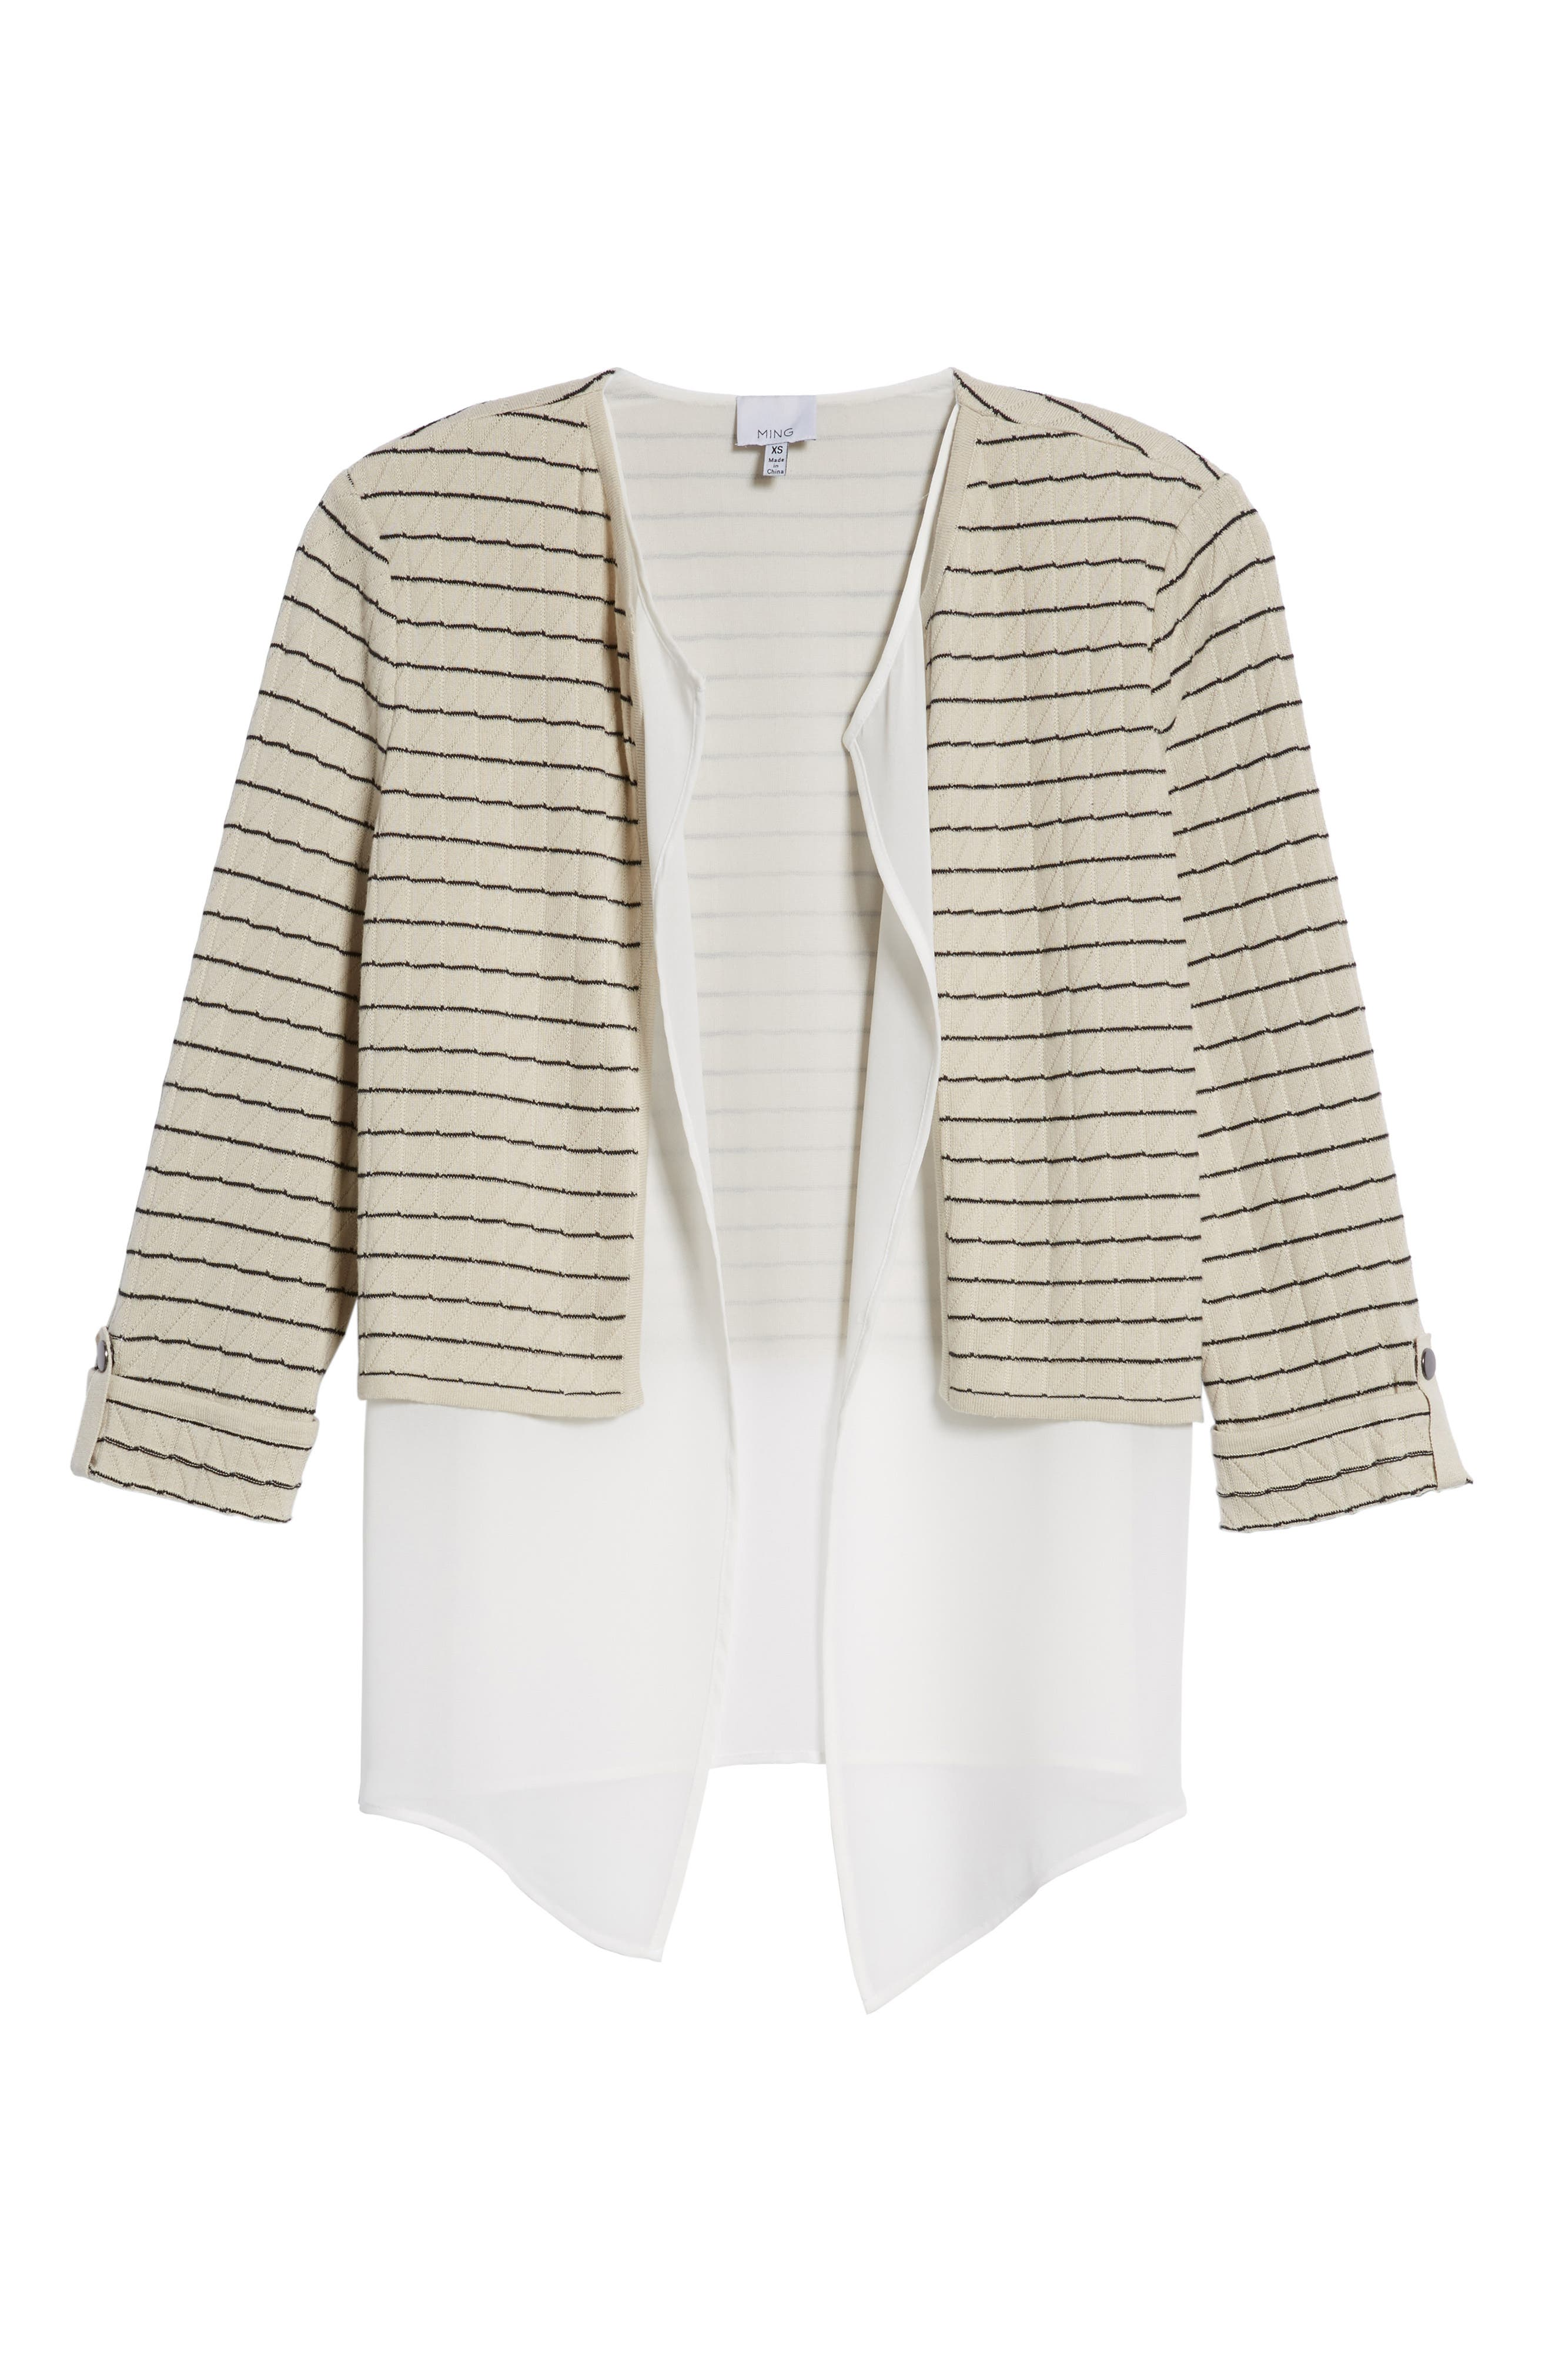 Layered Look Knit Jacket,                             Alternate thumbnail 6, color,                             Almond Beige/ Black/ White